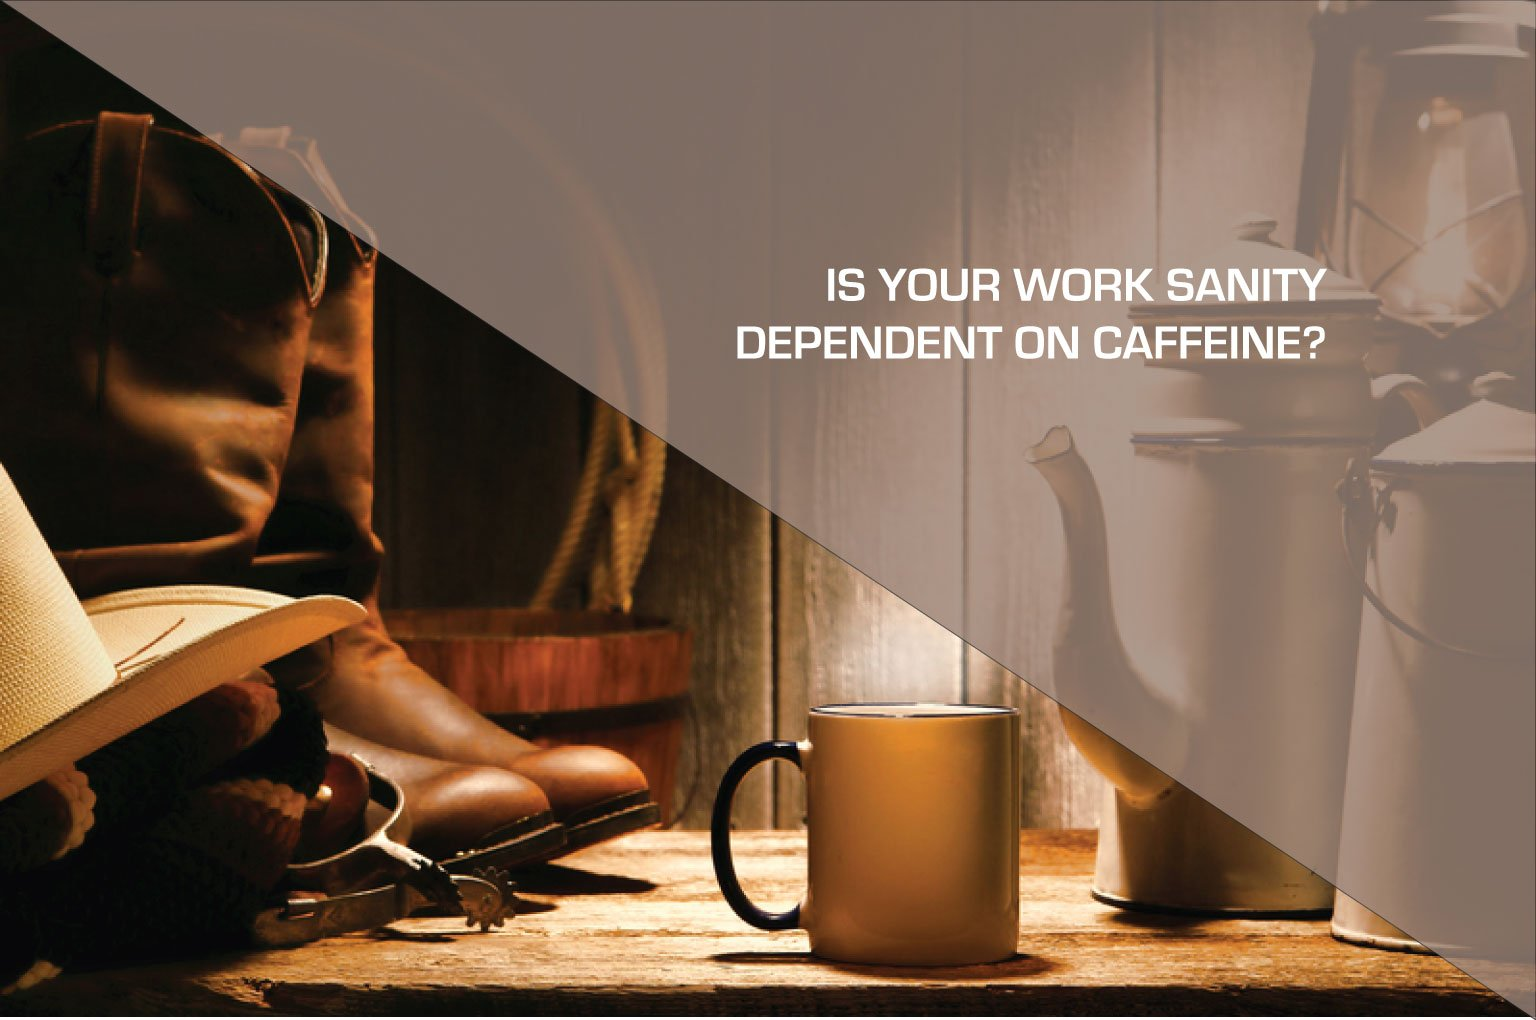 Is Your Work Sanity Dependent on Caffeine?